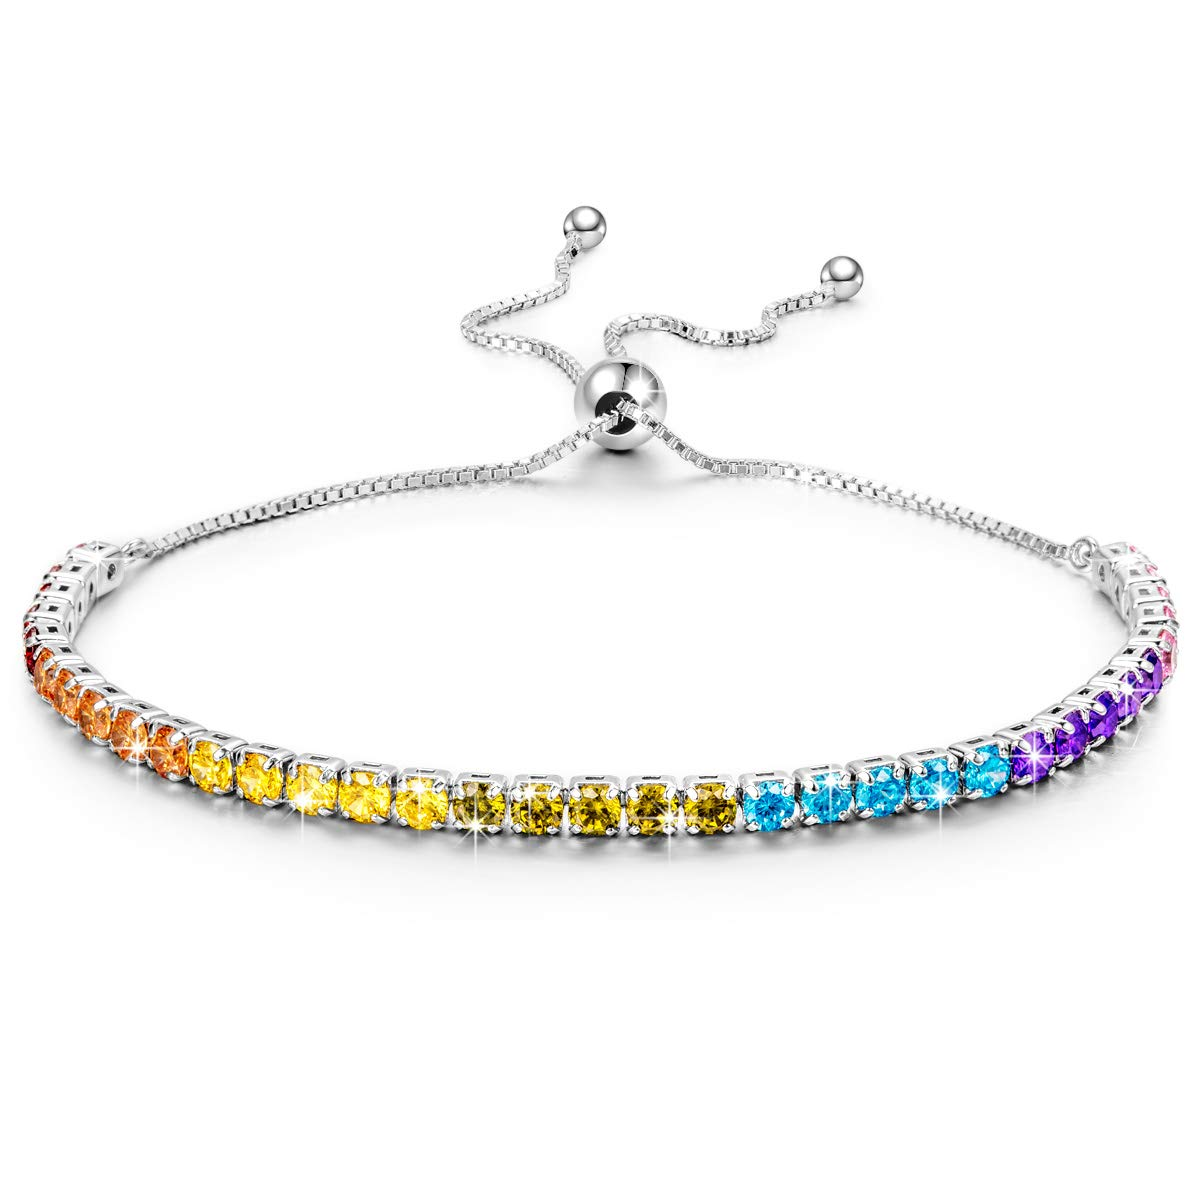 Kate Lynn Bracelets for Women Woman's Valentine Gifts 925 Sterling Silver Colorful Crystals from Swarovski Adjustable Tennis Bracelet Gifts for Her Ladies Gift by Kate Lynn